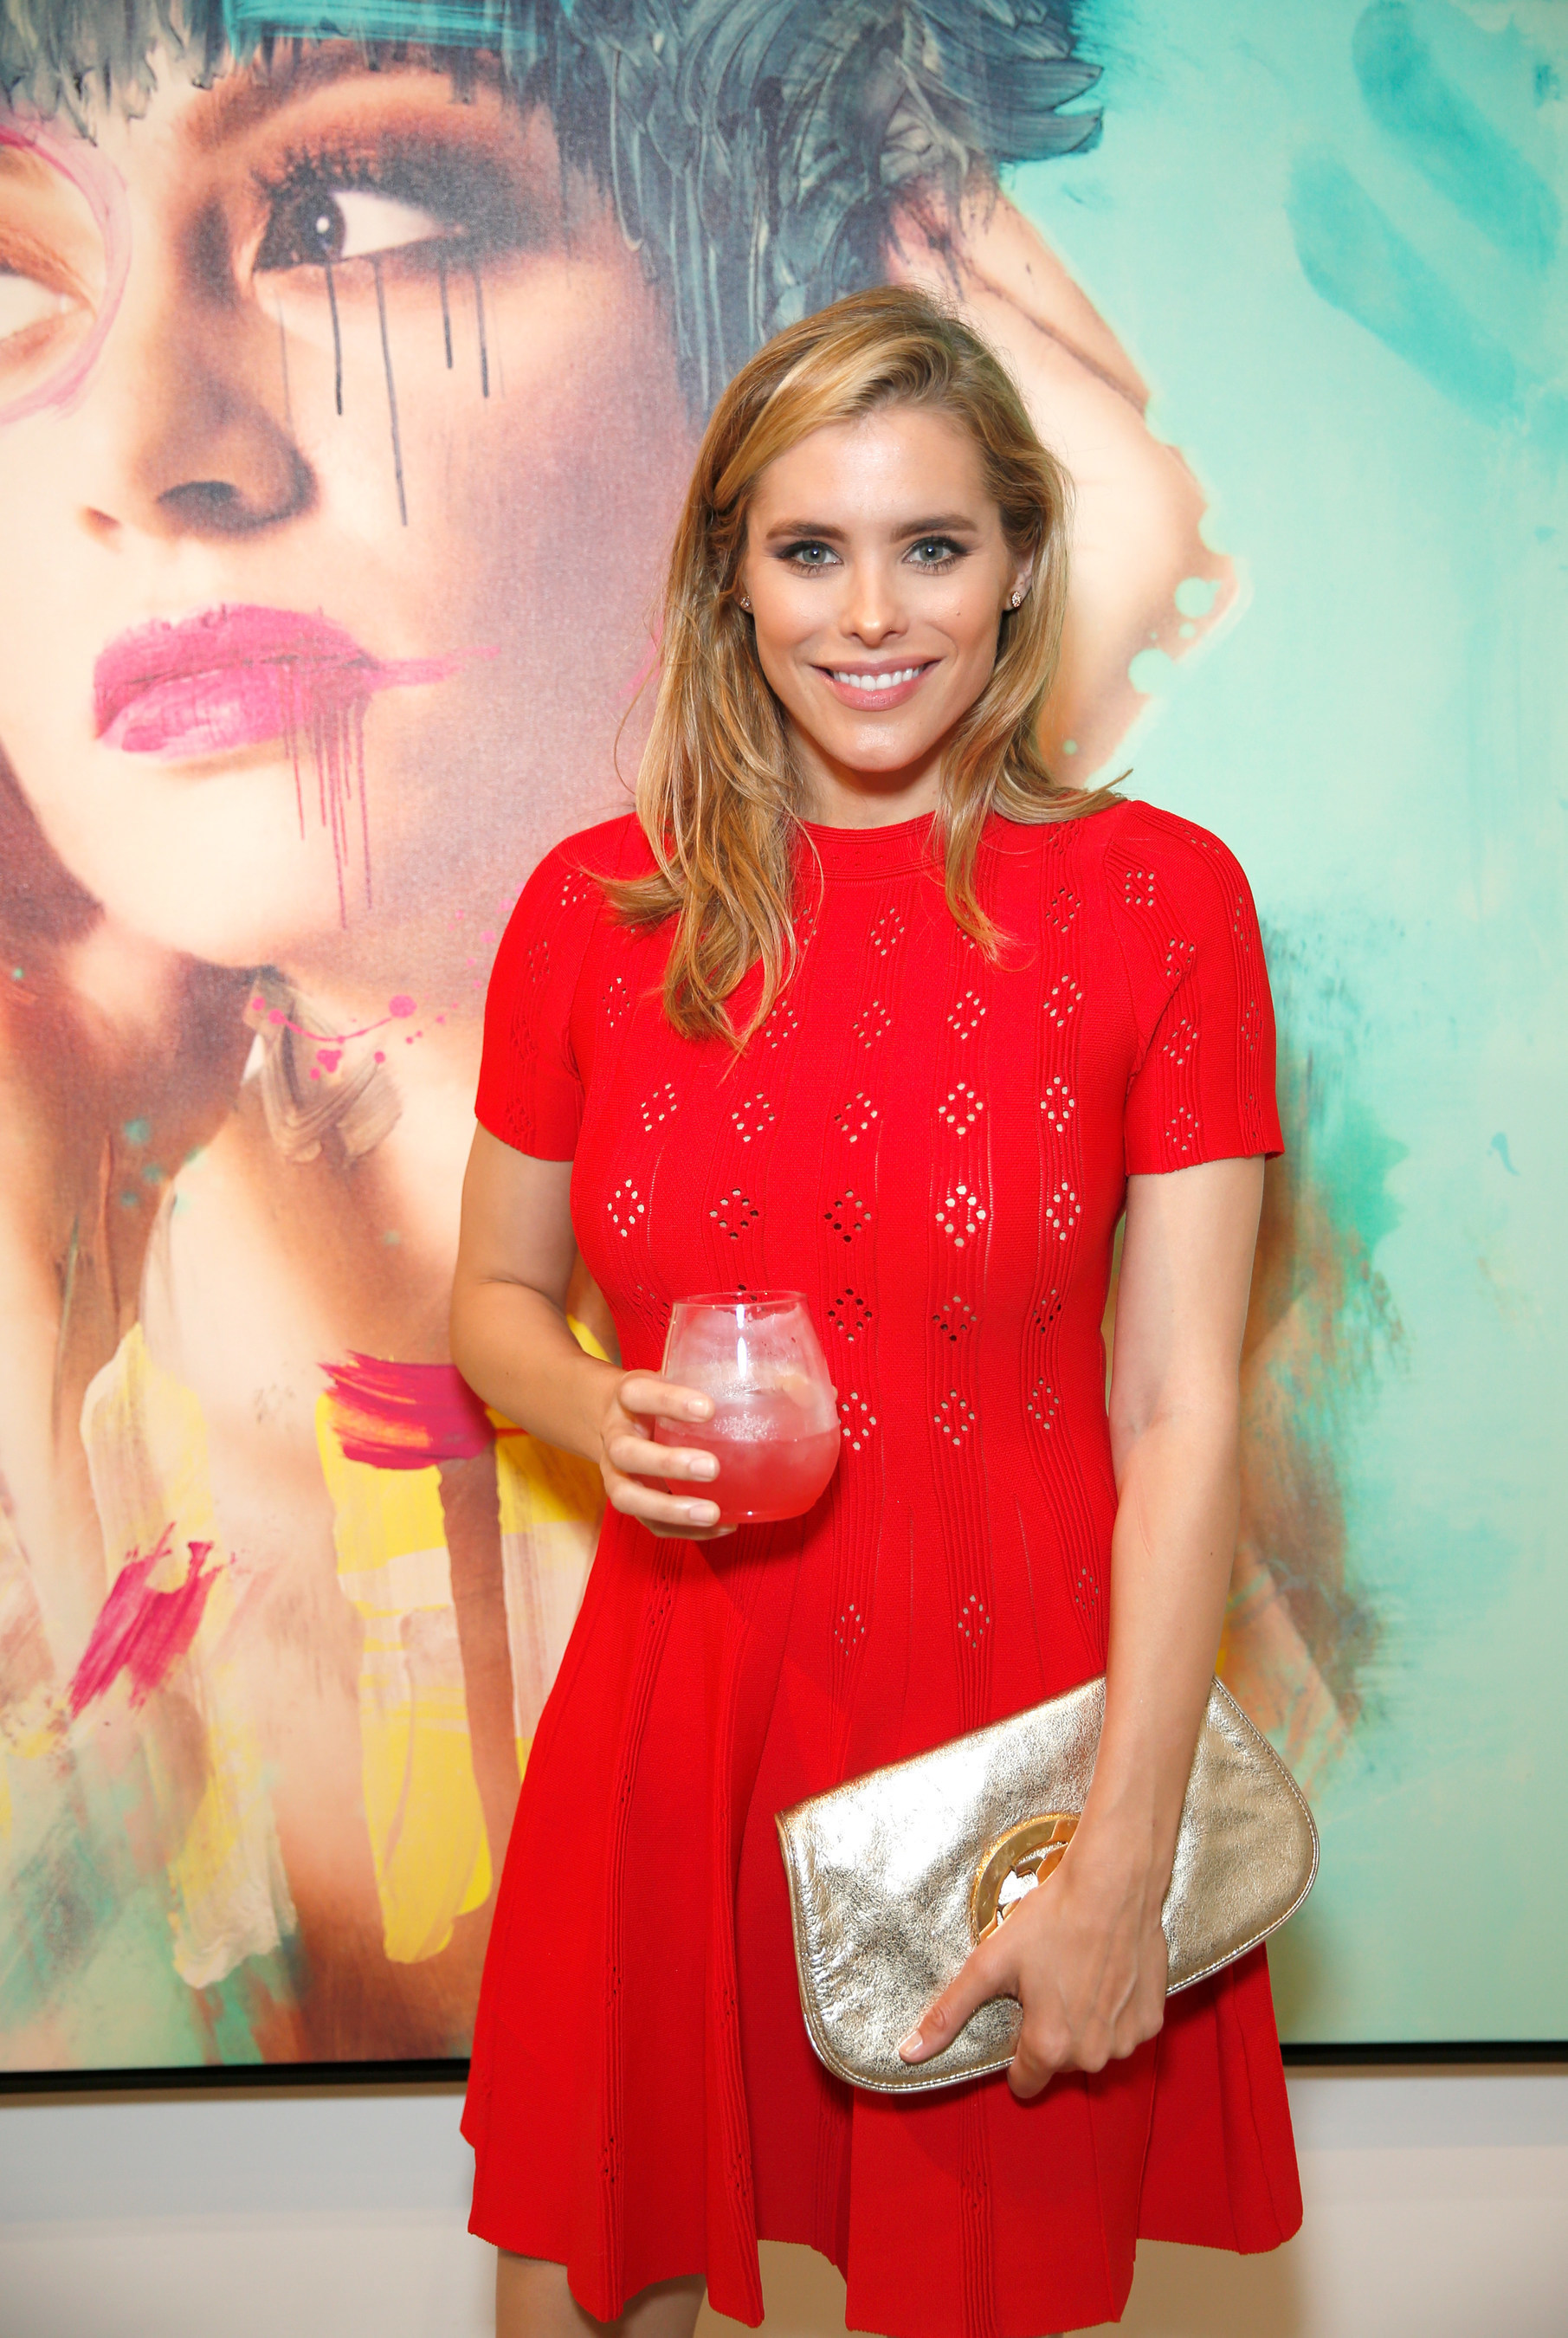 Actress Susie Abromeit from the hit Netflix series, Jessica Jones, sipped a VeeV signature cocktail while taking in the Meeting JASMIN fine art exhibition in Los Angeles, CA.